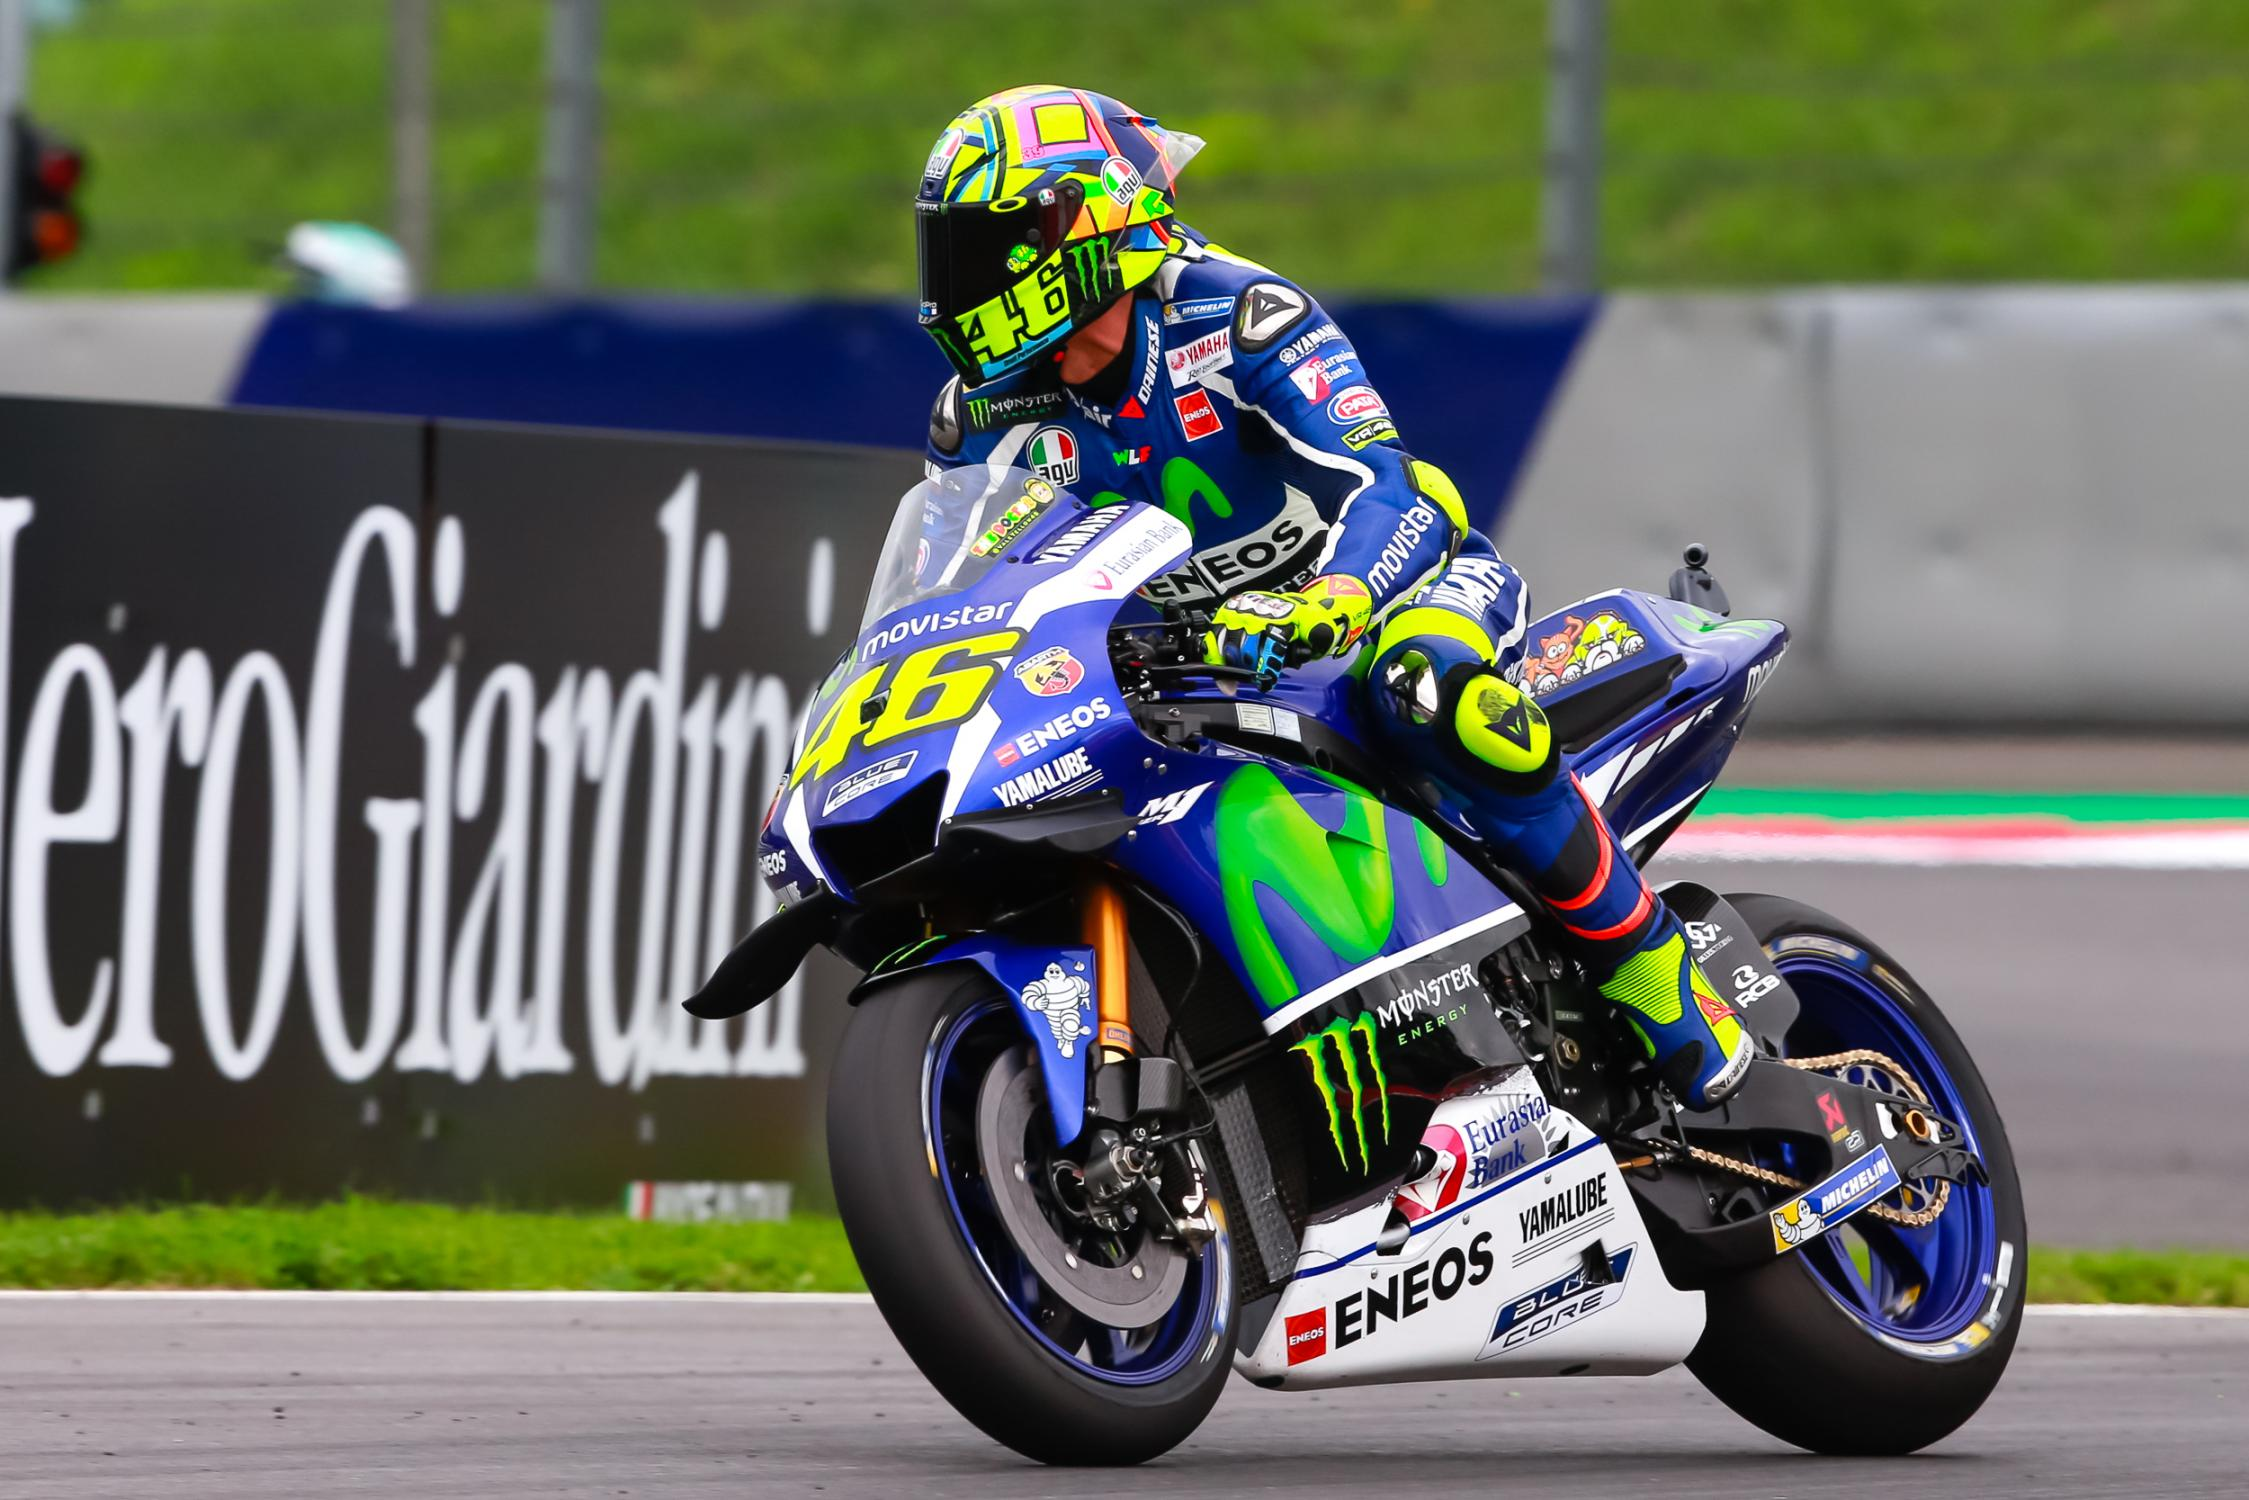 ROSSI ATTEND LA BASTON AVEC IMPATIENCE